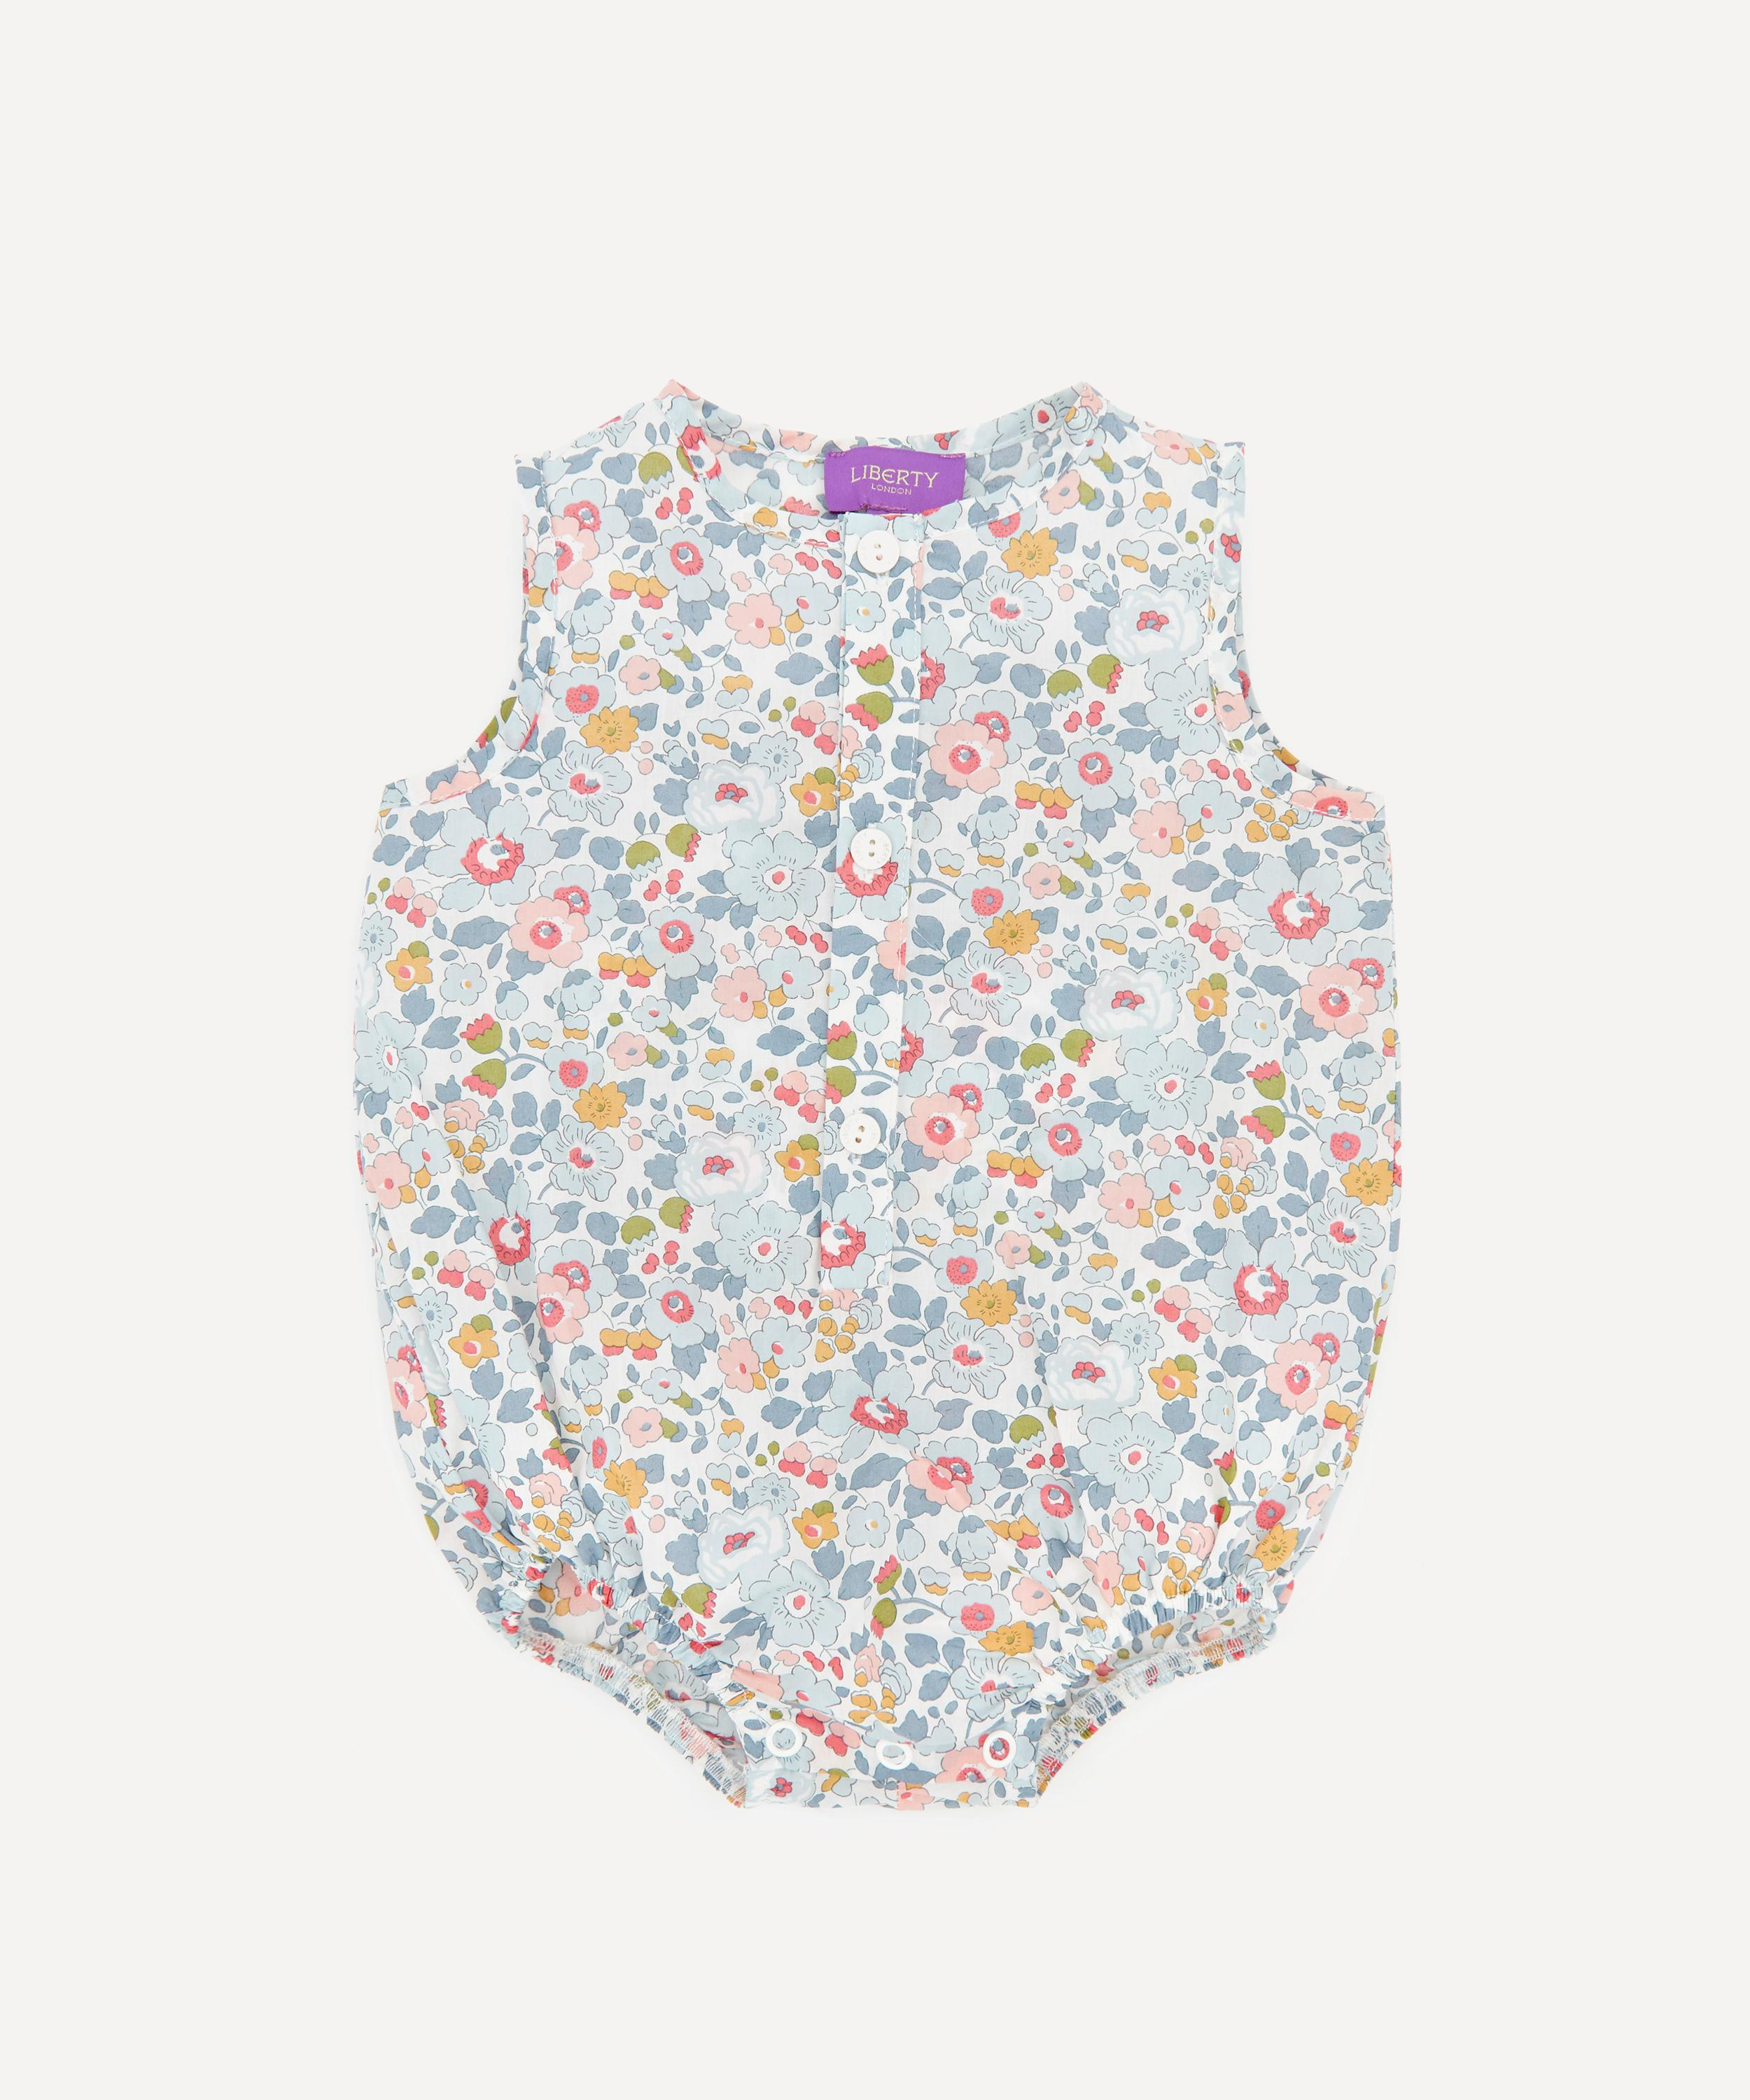 Liberty London and knit baby romper